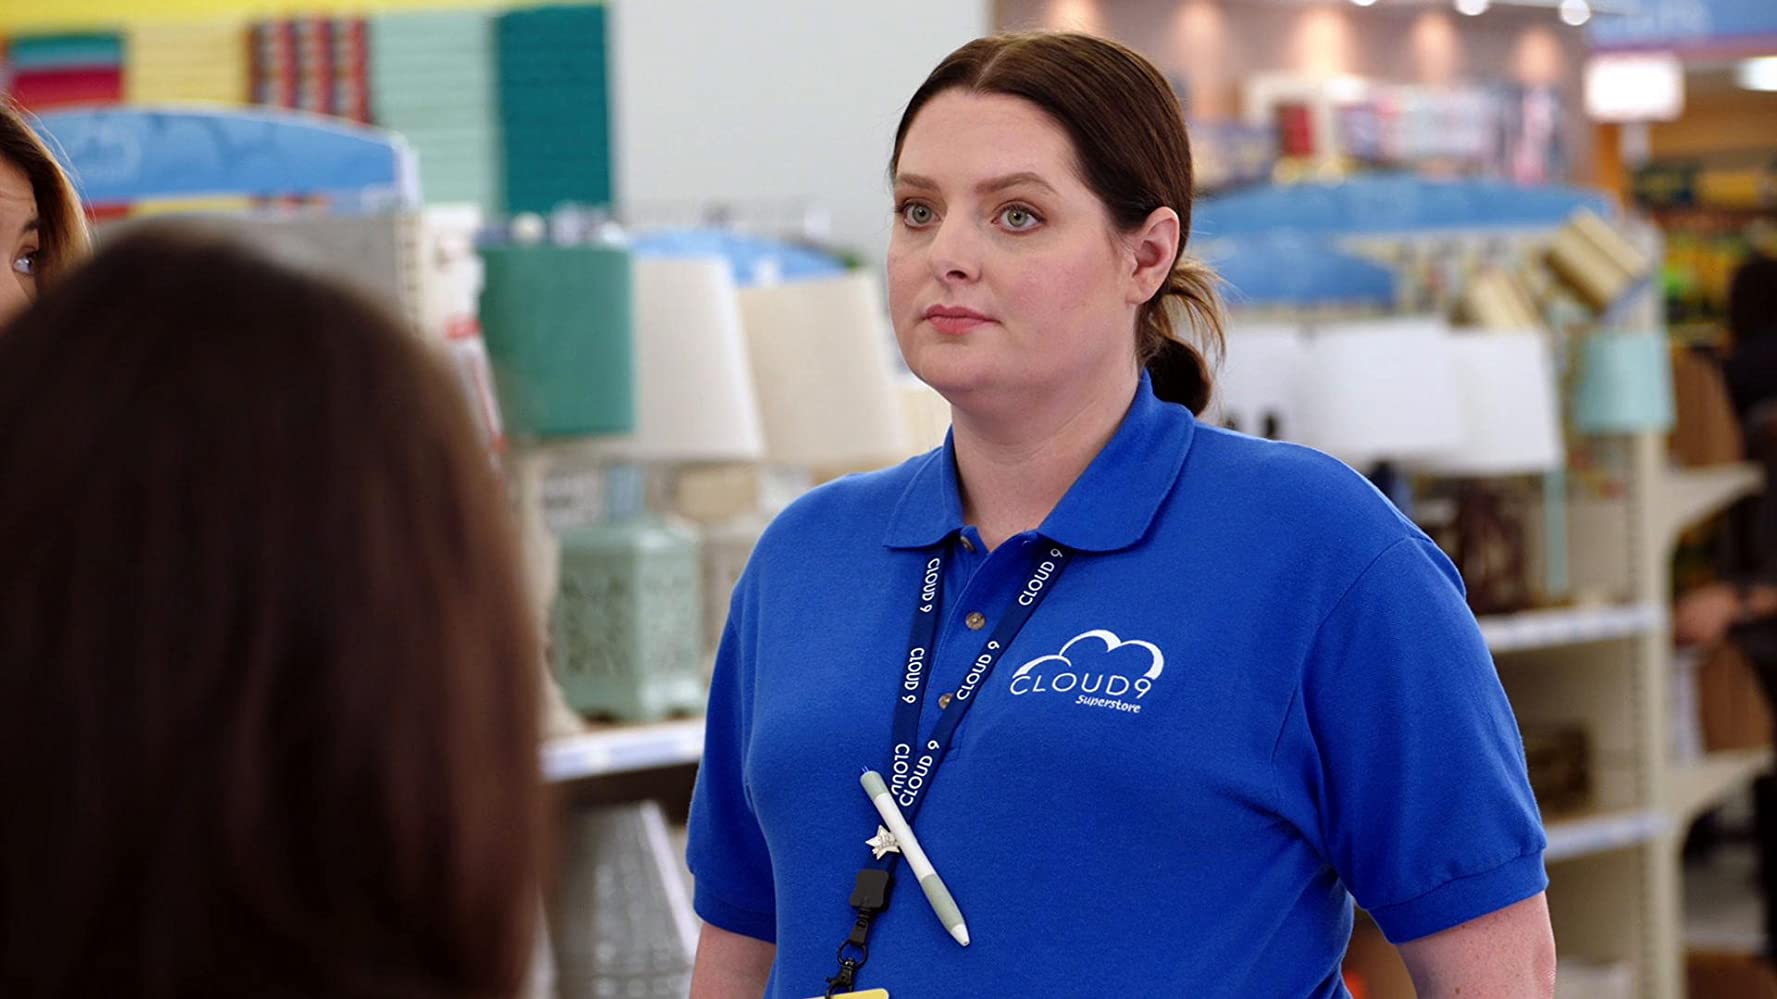 Lauren Ash in Superstore (2015)